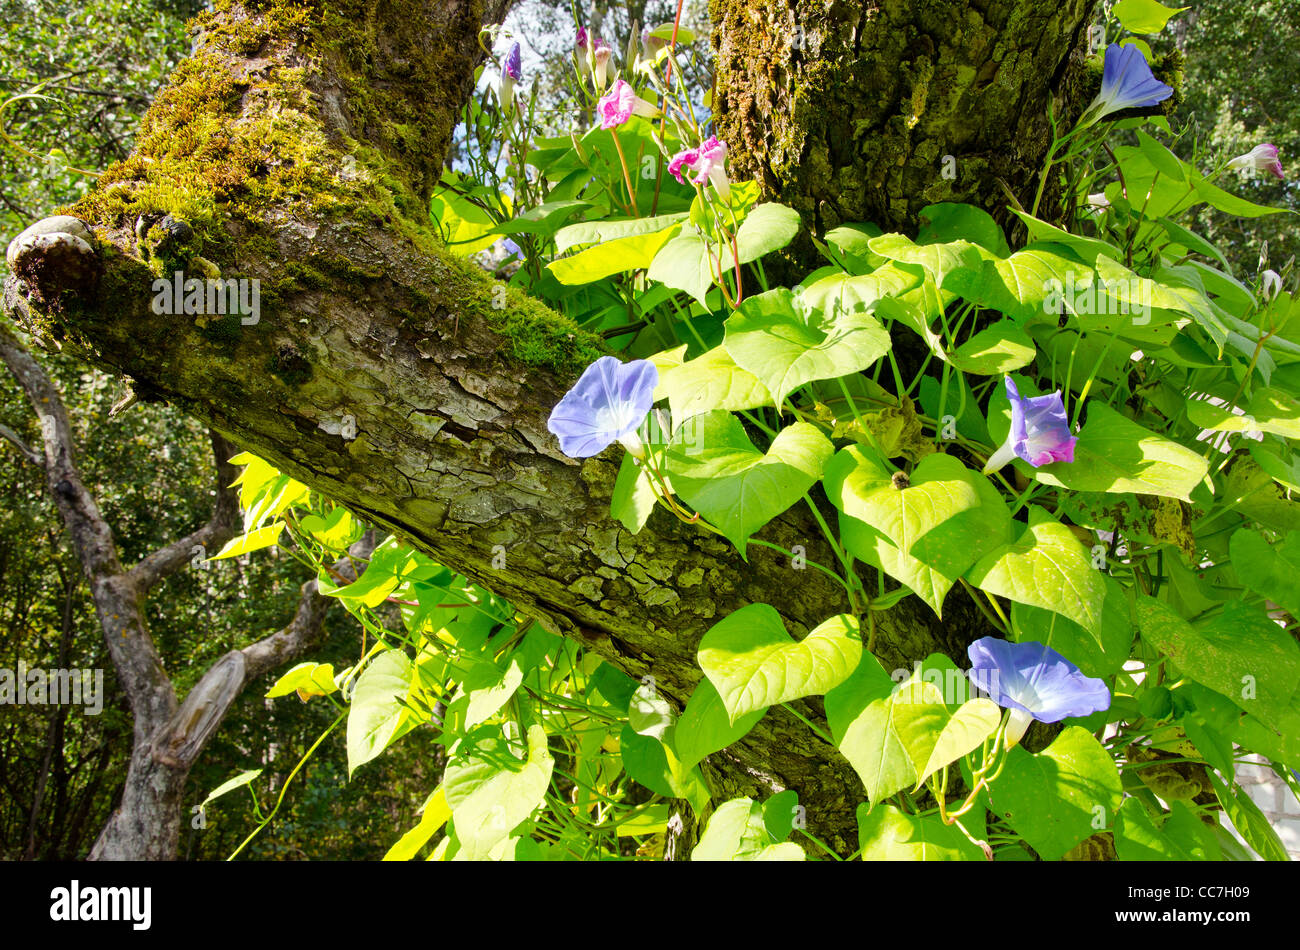 Blooming clematis flower creeper growing on an old apple tree trunk stock photo royalty free - Flowers that grow on tree trunks ...